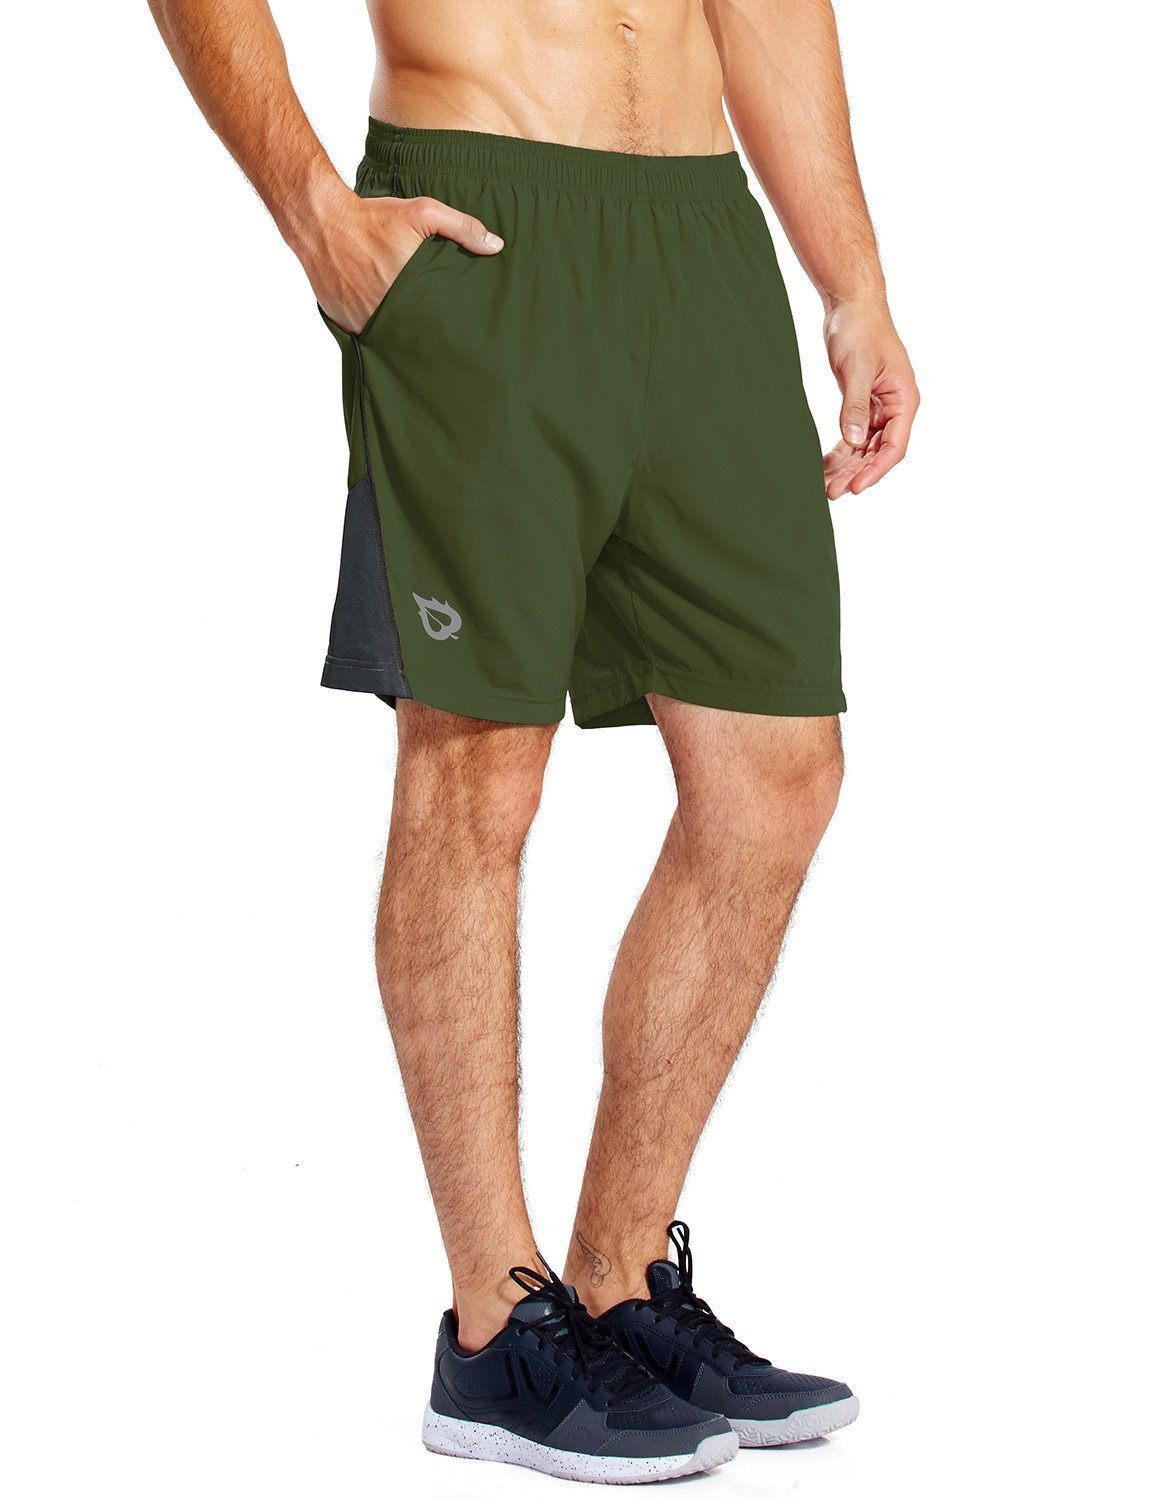 Baleaf Men's 7 Inches Quick Dry Workout Running Shorts Mesh Liner Zip Pockets Green Size S